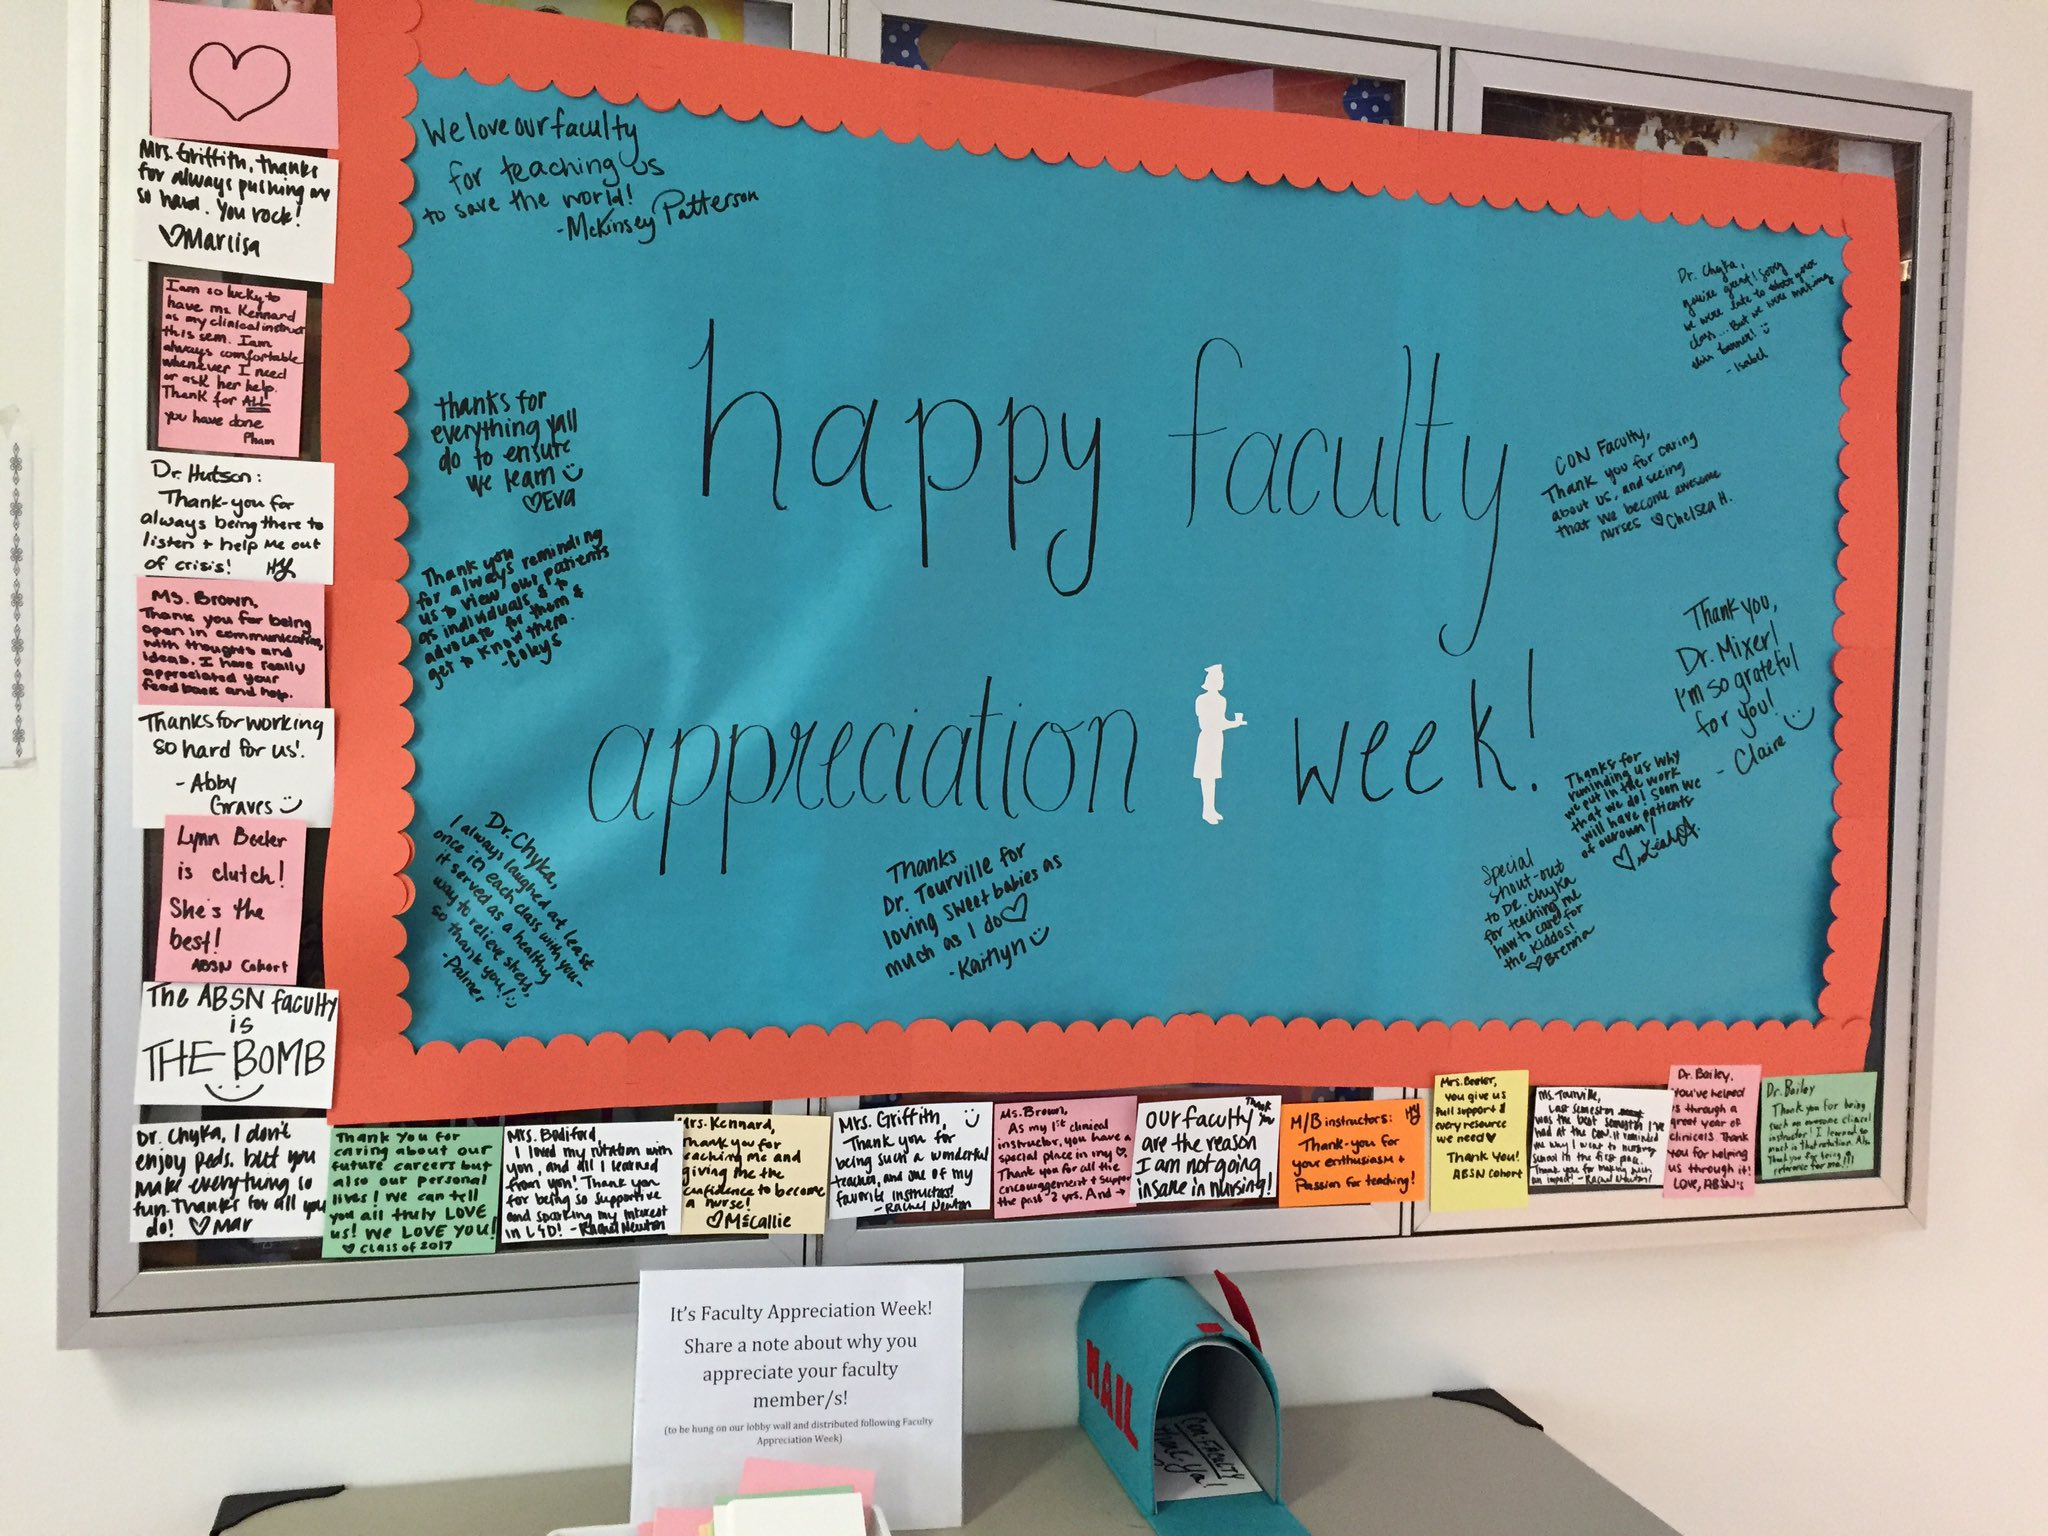 It's faculty appreciation week @utknursing ! Thanks to all who are expressing their appreciation! @UTKnoxville #volnurse https://t.co/QdNcwenb1S